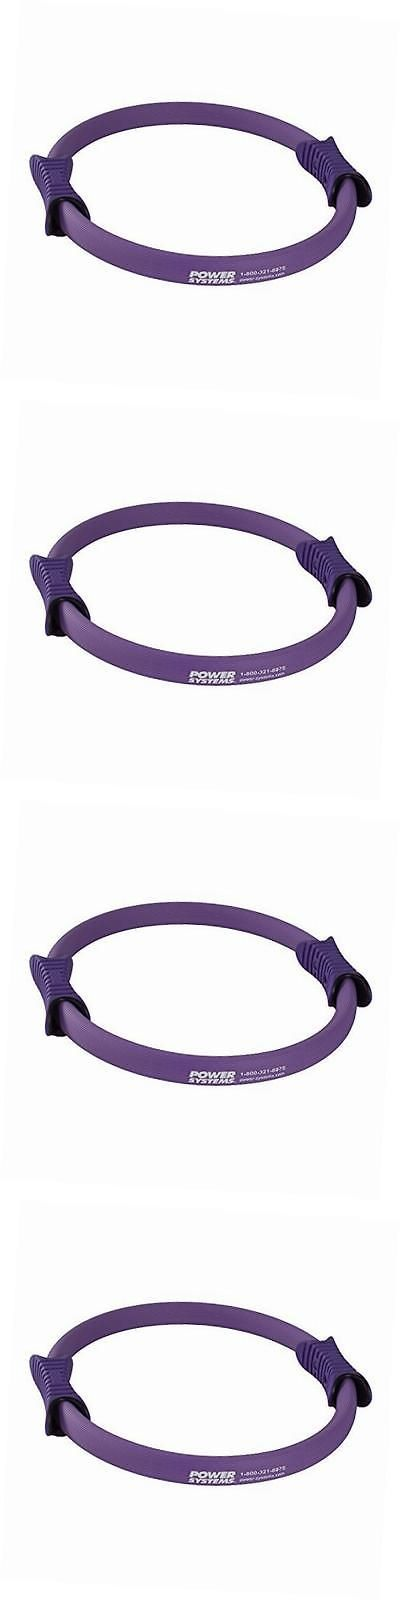 Pilates Rings 179808: Light Pilates Rings, Purple -> BUY IT NOW ONLY: $36.57 on eBay!